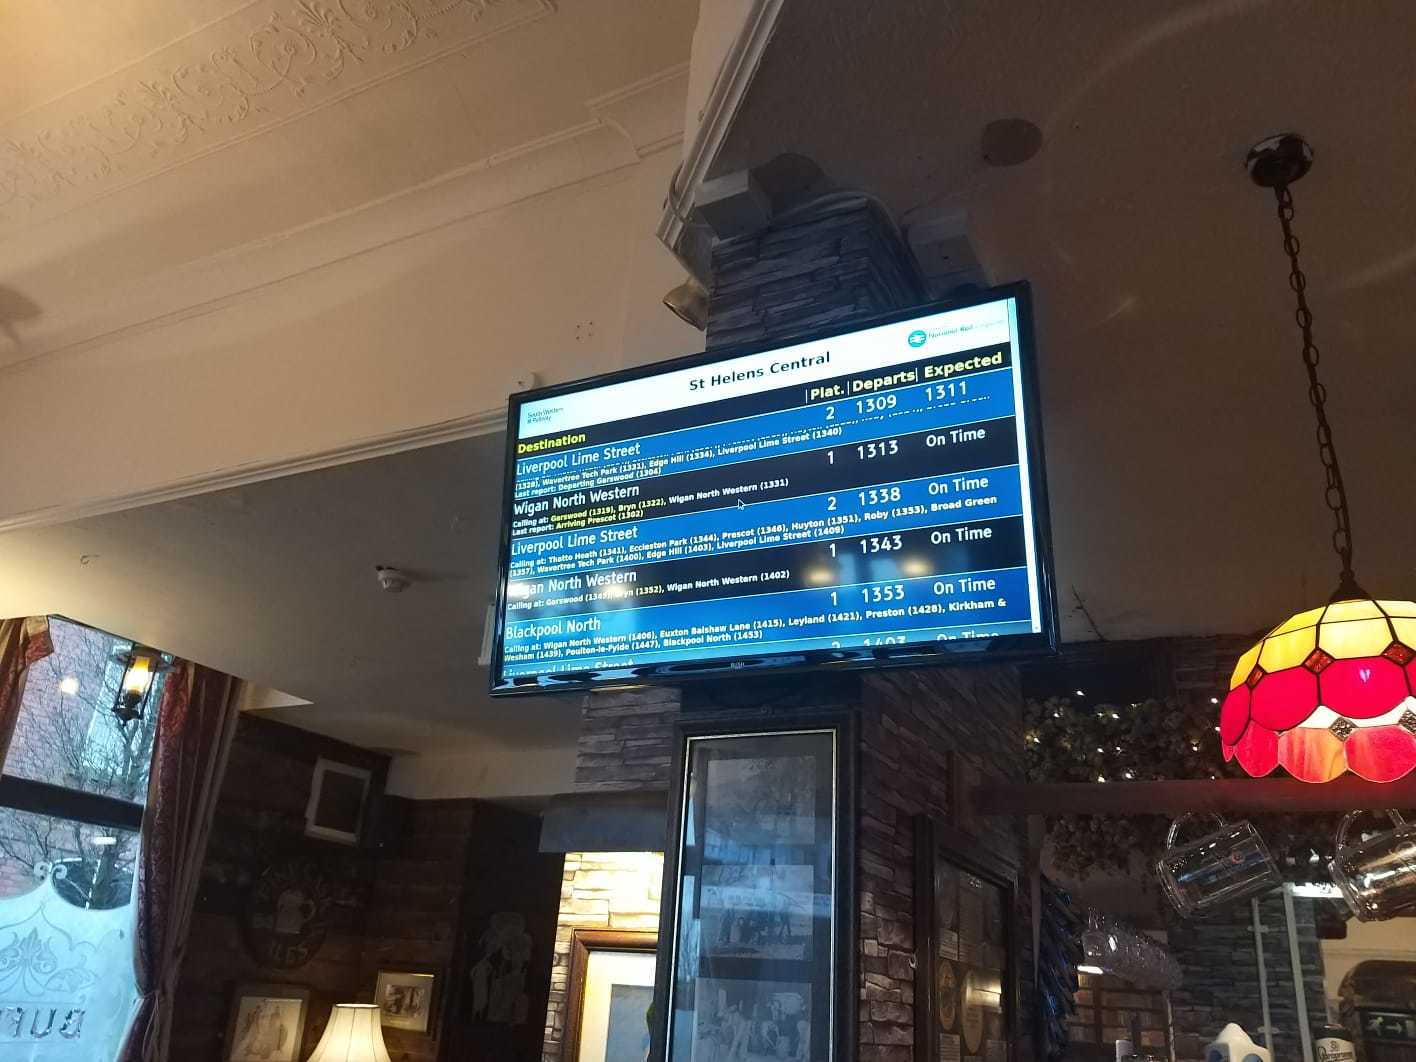 Royal Alfred installs real time train information